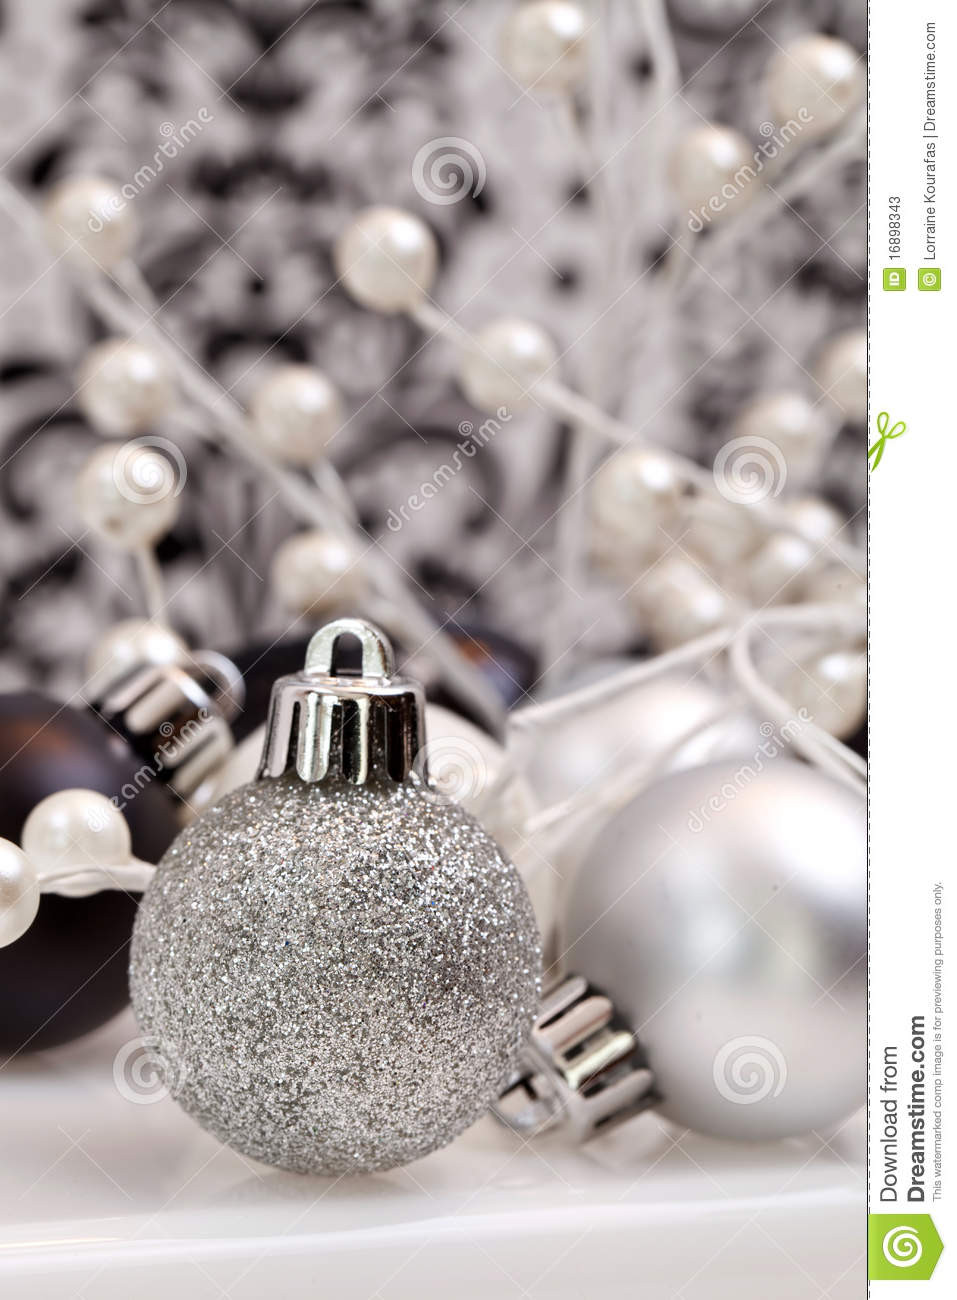 13 Best s of Black Christmas Ornaments Black and